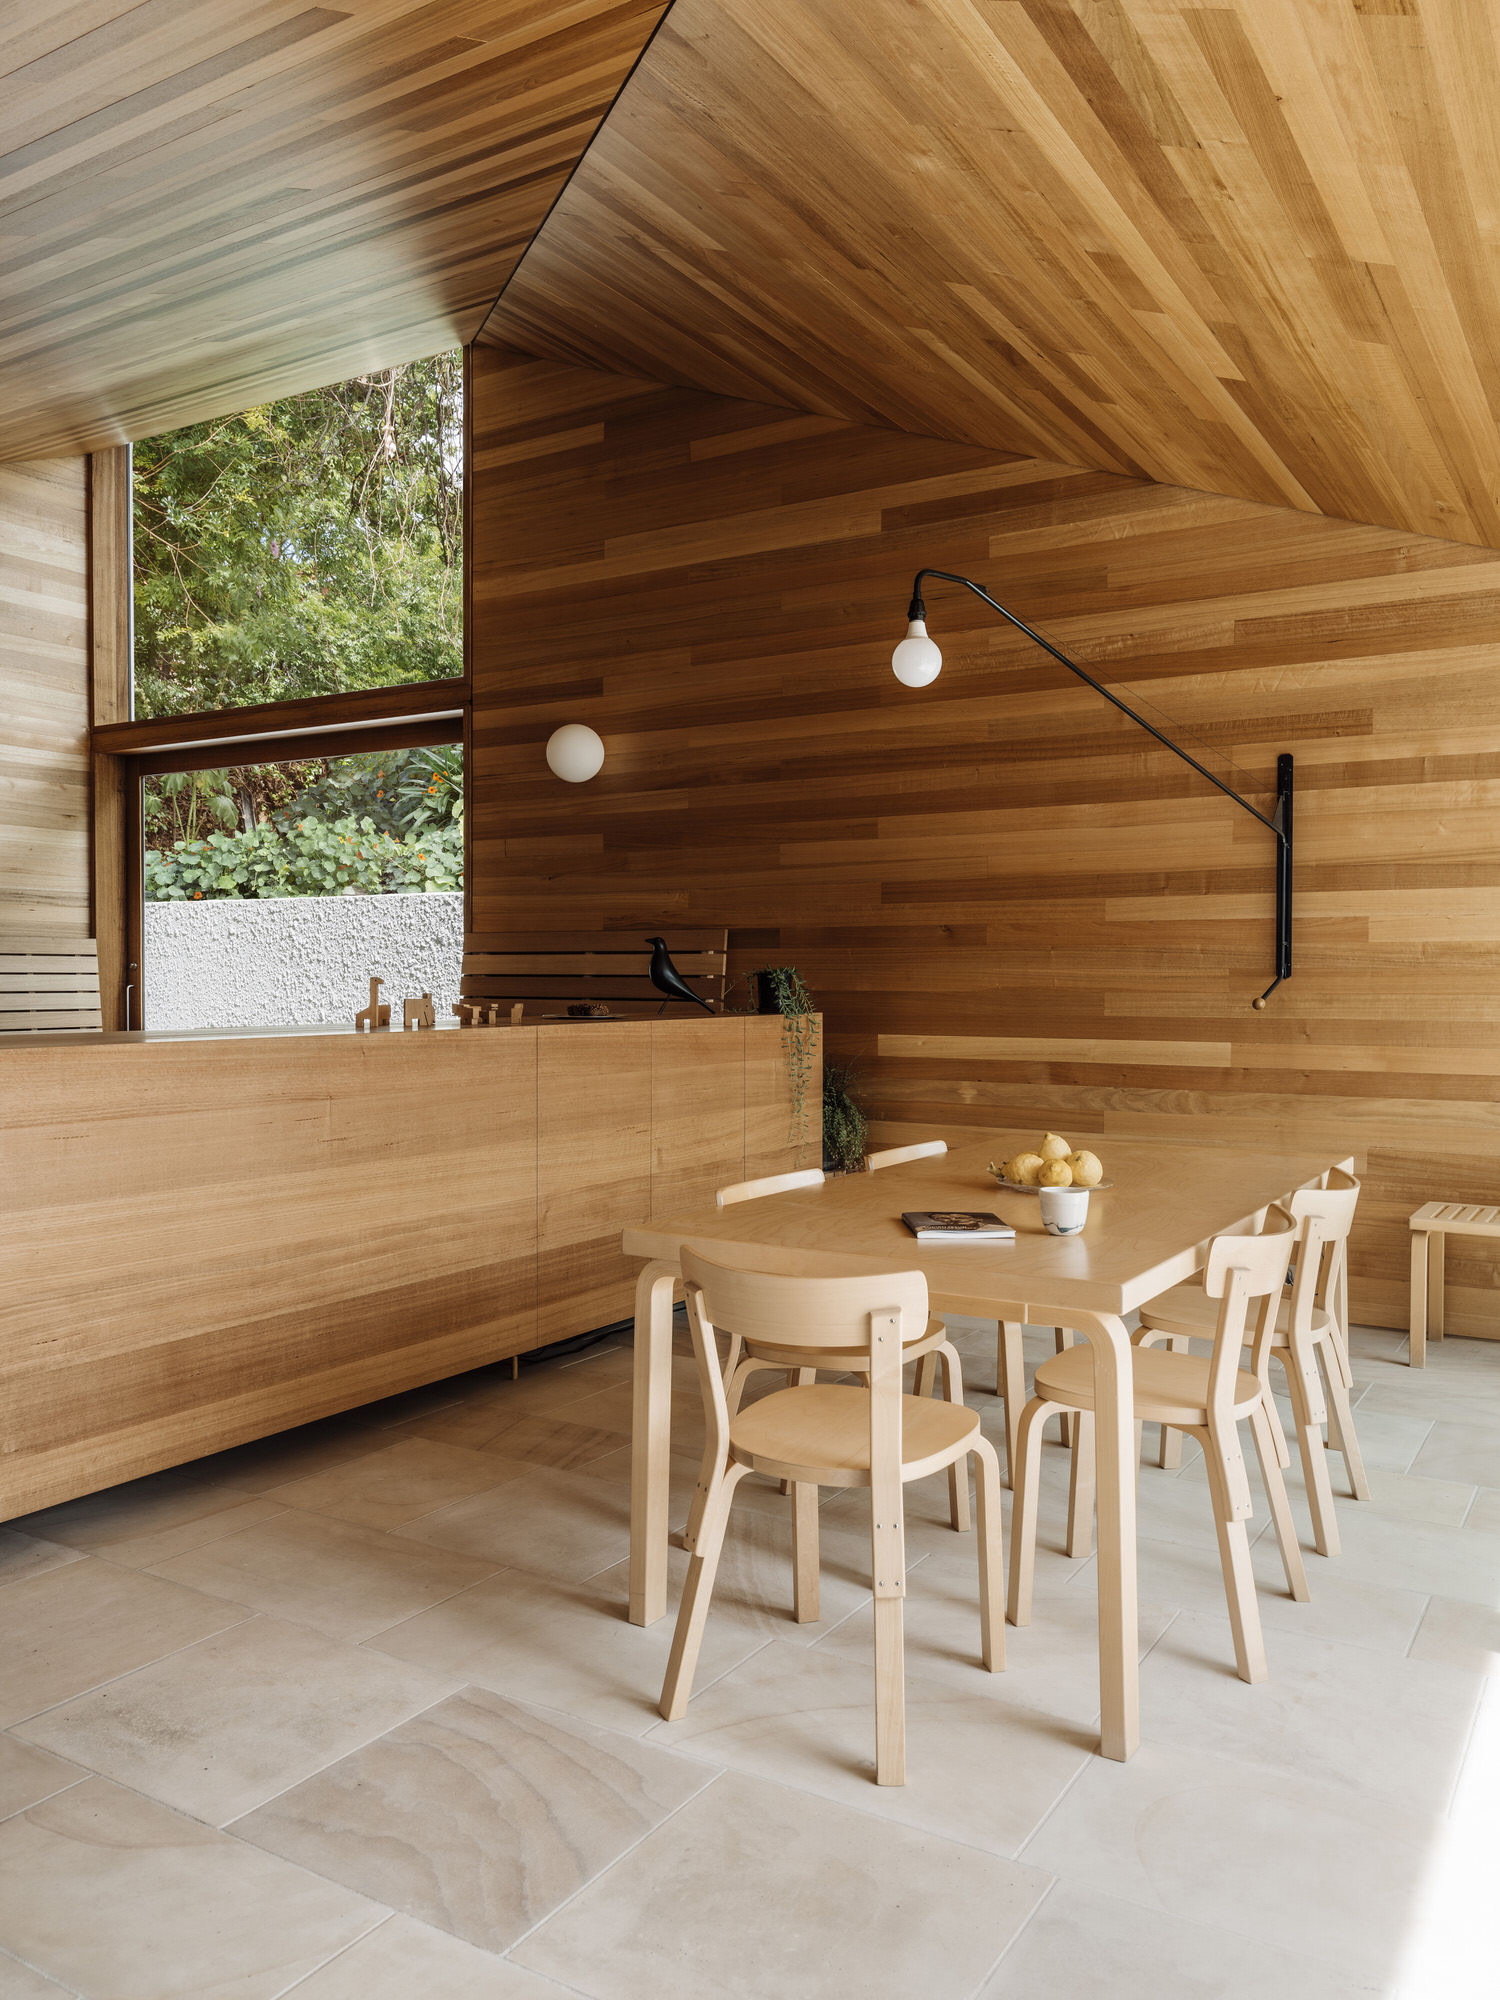 Taylor+hinds Architects Lower Jordan Hill Road Photo Adam Gibson Australian Architecture Yellowtrace 07